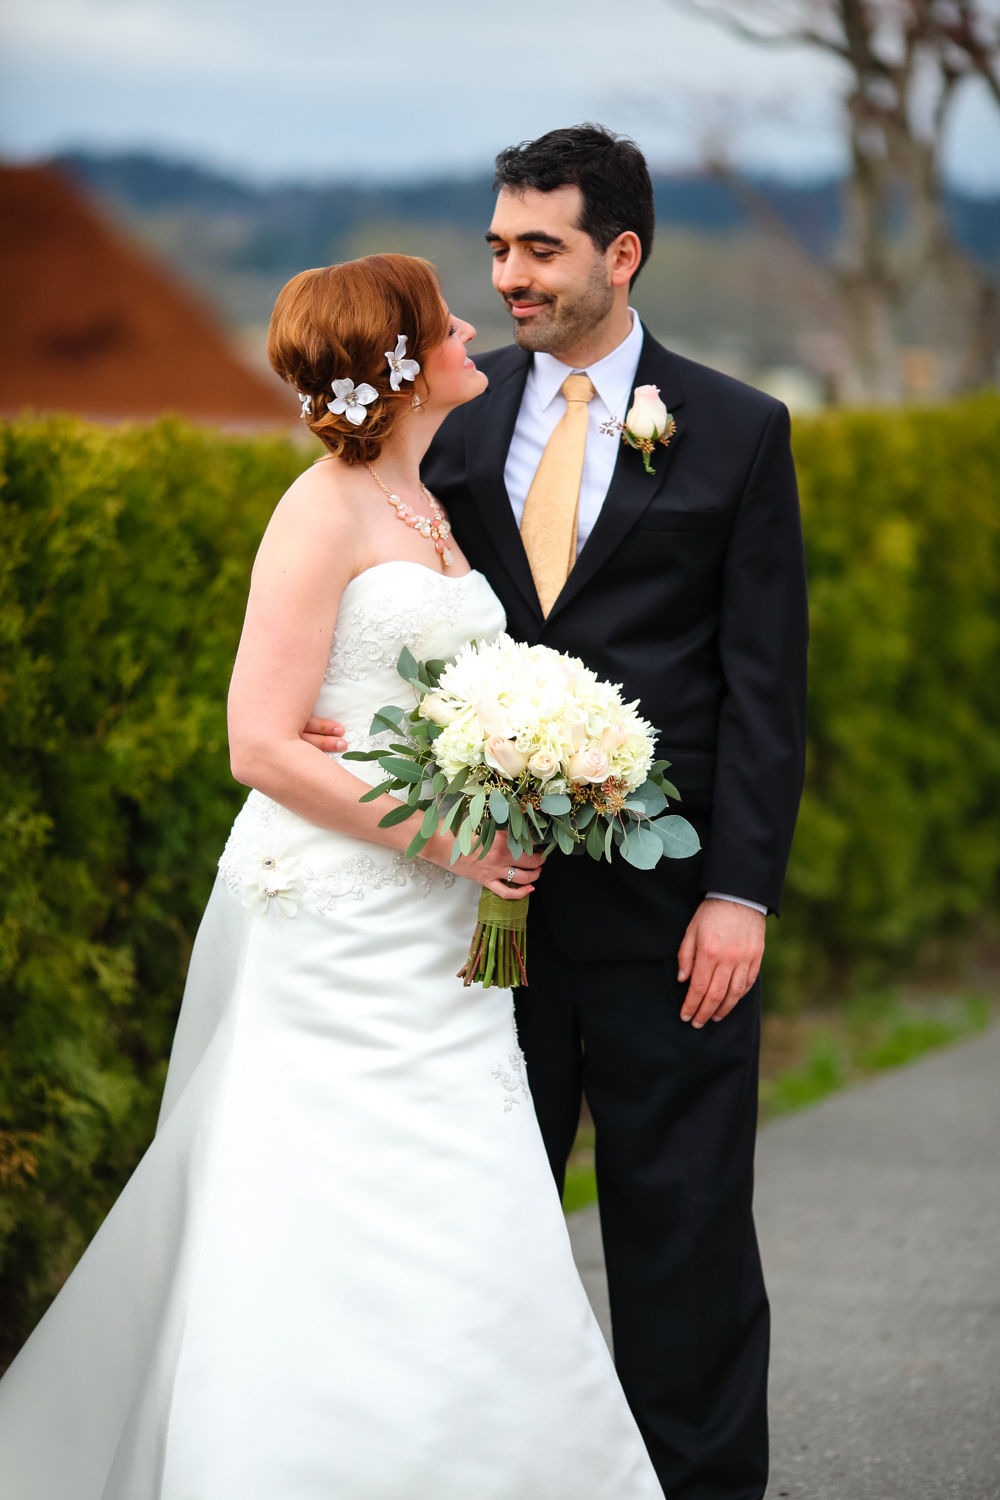 Wedding Photos Thomas Family Farms Snohomish Washington16.jpg